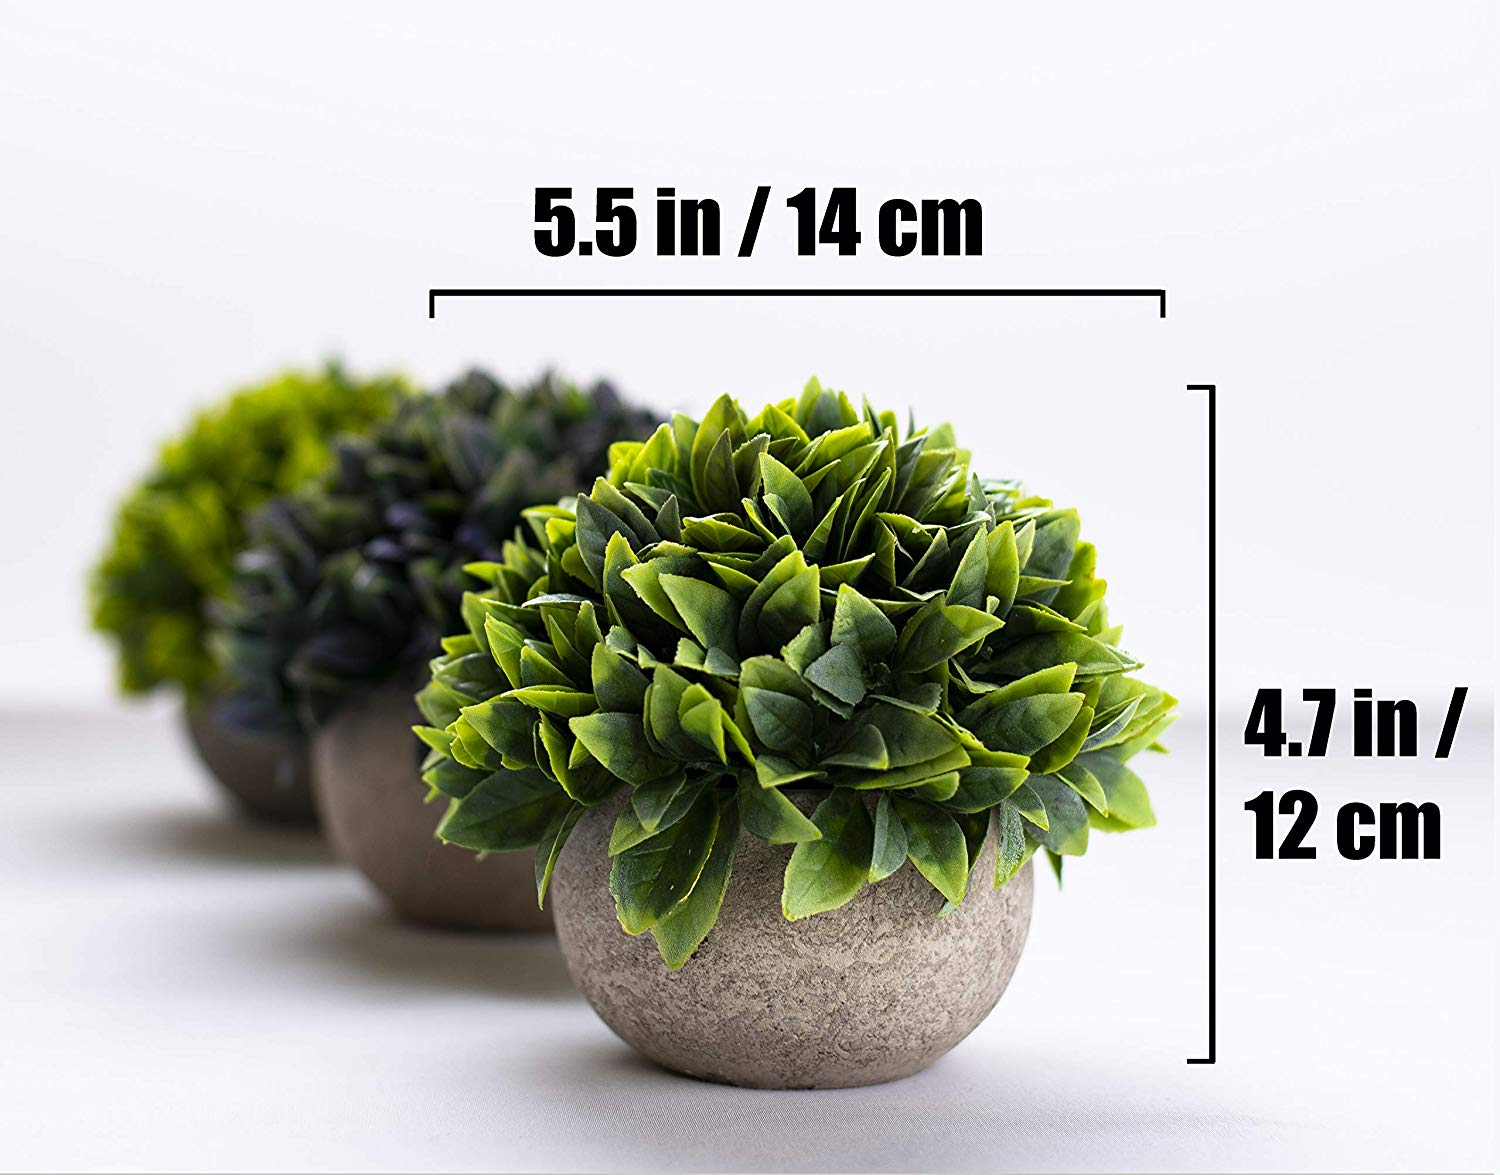 Artificial Faux Plants Decor Small Faux Succulent Cactus Plant Tree Decorations For Rustic Home Wall Bedroom Bathroom View Succulent Plants Tropical Plants Oem Product Details From Ningbo Yinzhou Tingbin International Trade